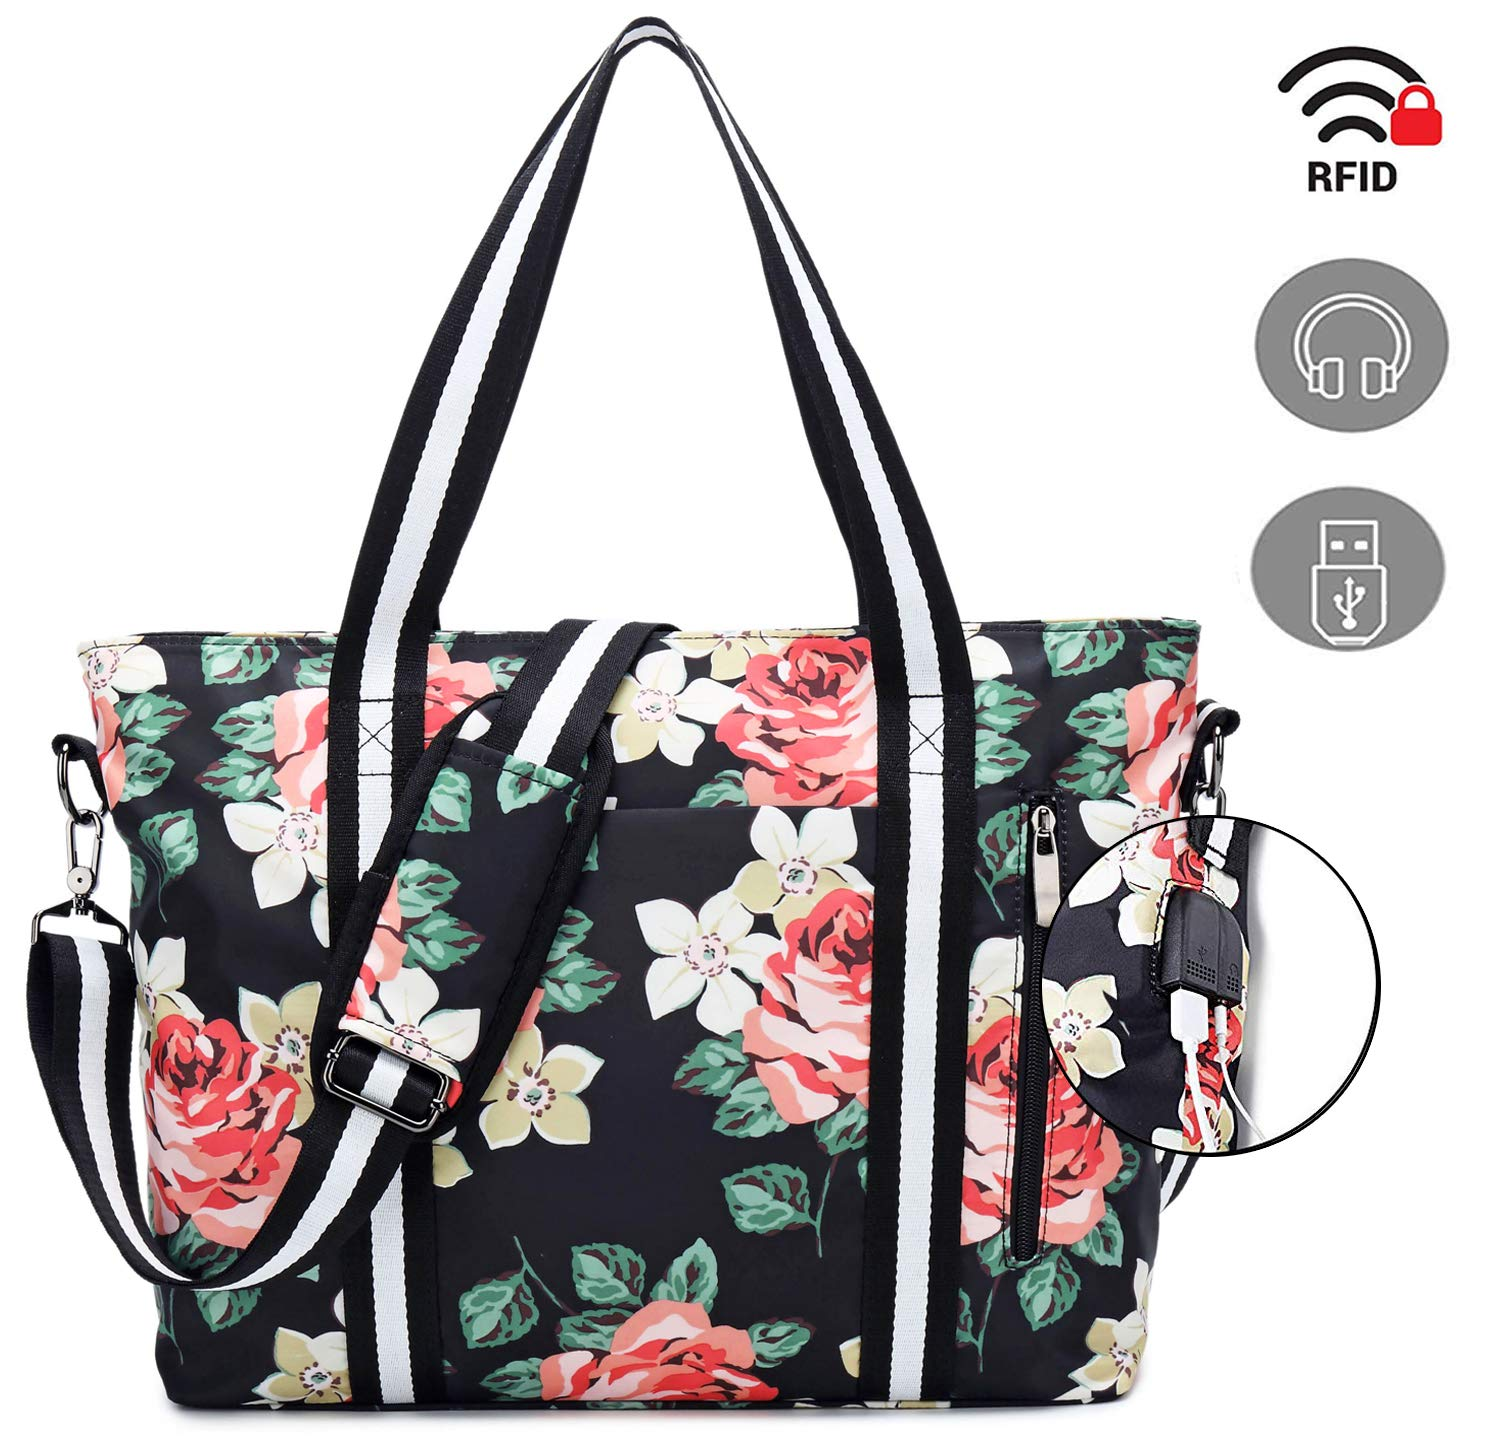 Laptop Tote Bag with USB Charging Port by Meisohua